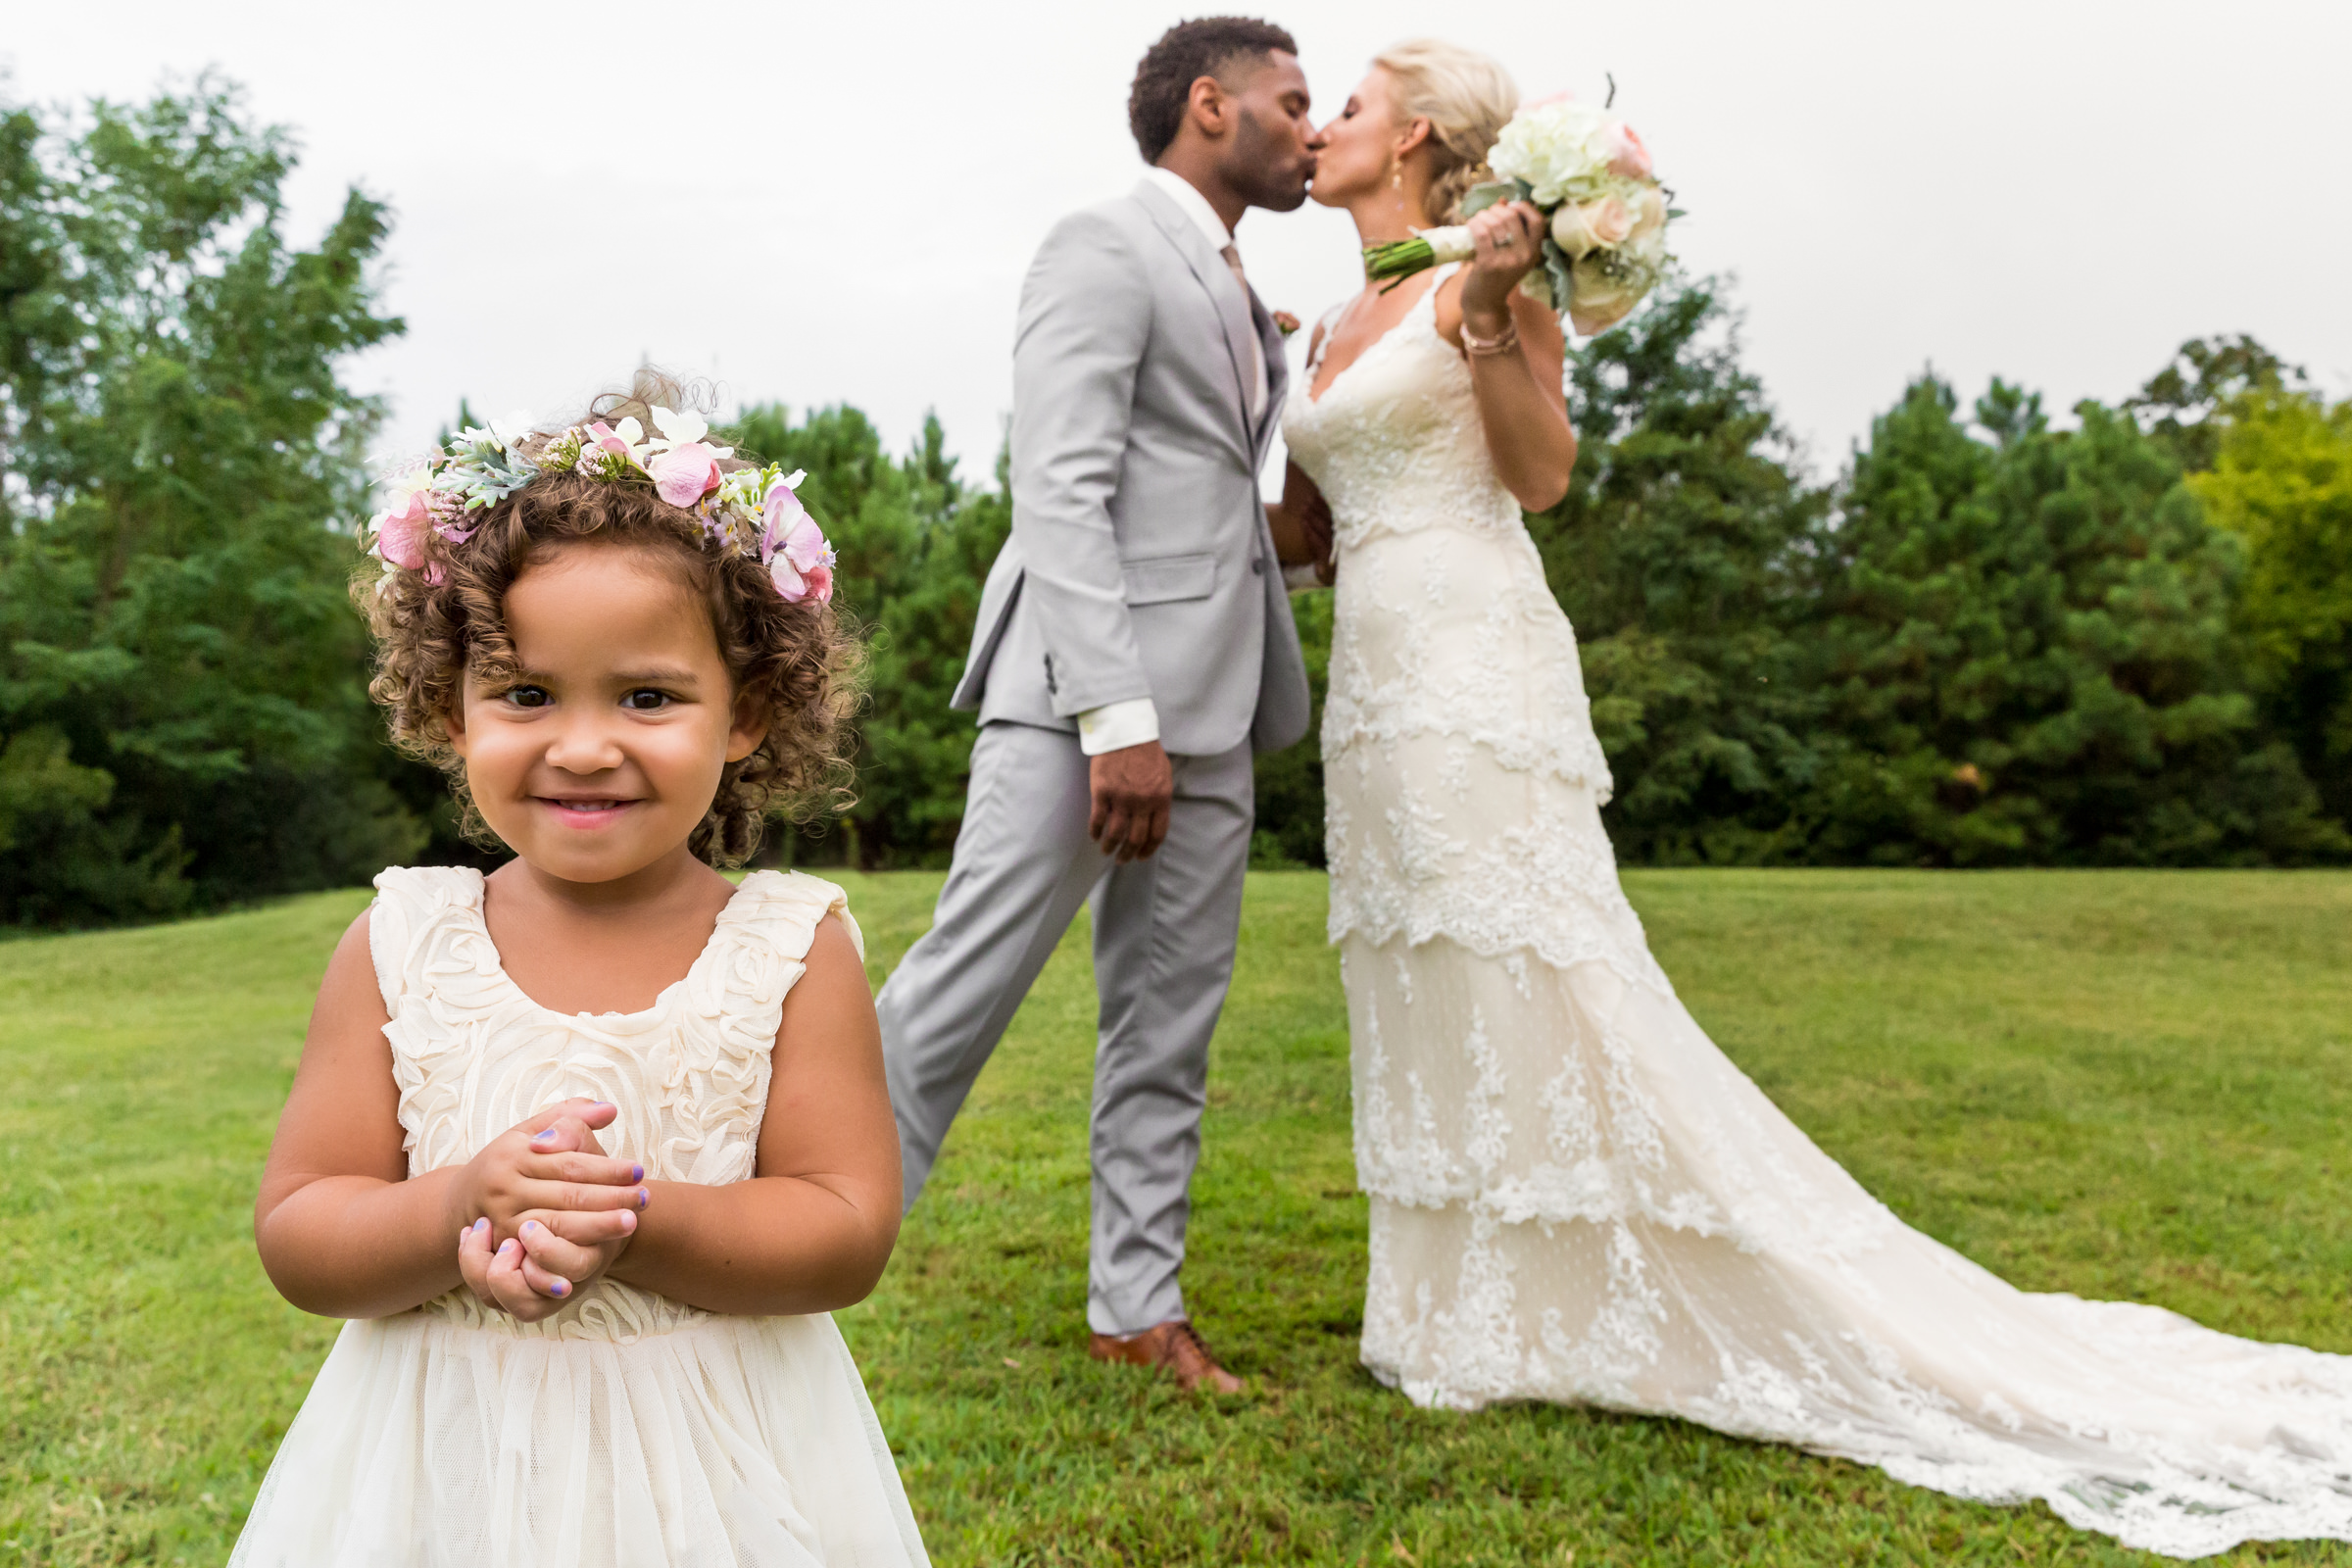 Flower girl with kissing couple on lawn - photo by Procopio Photography